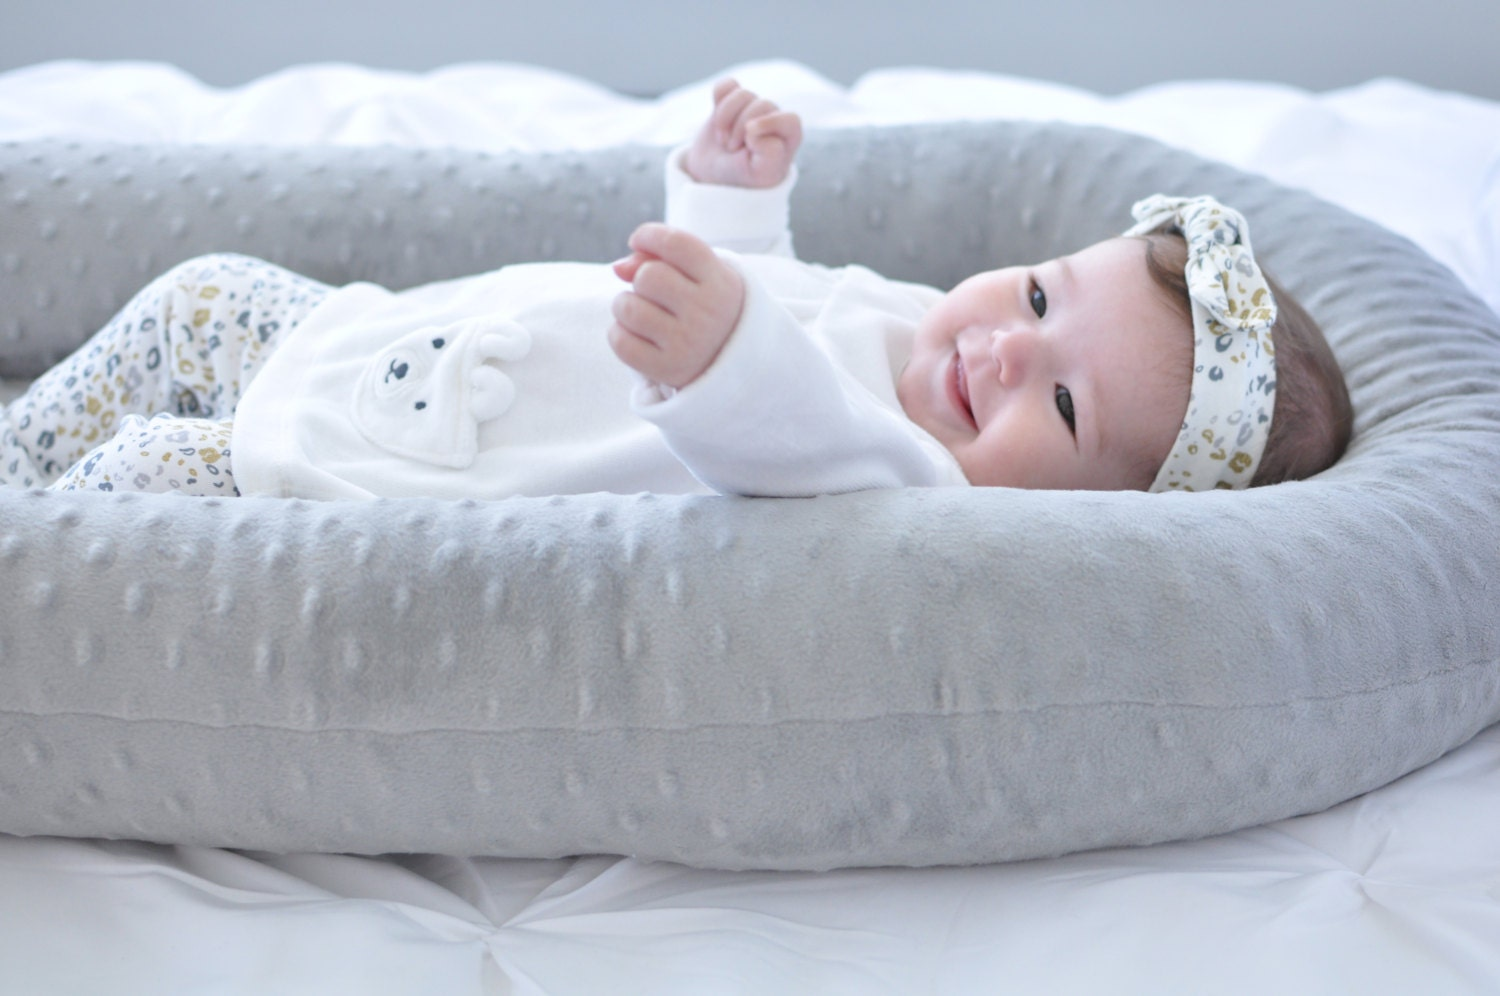 Genial Cosleep Baby Bed   White And Gray   Cosleeping   Baby Pillow   Sleep  Transition   Cradle Me Pillow